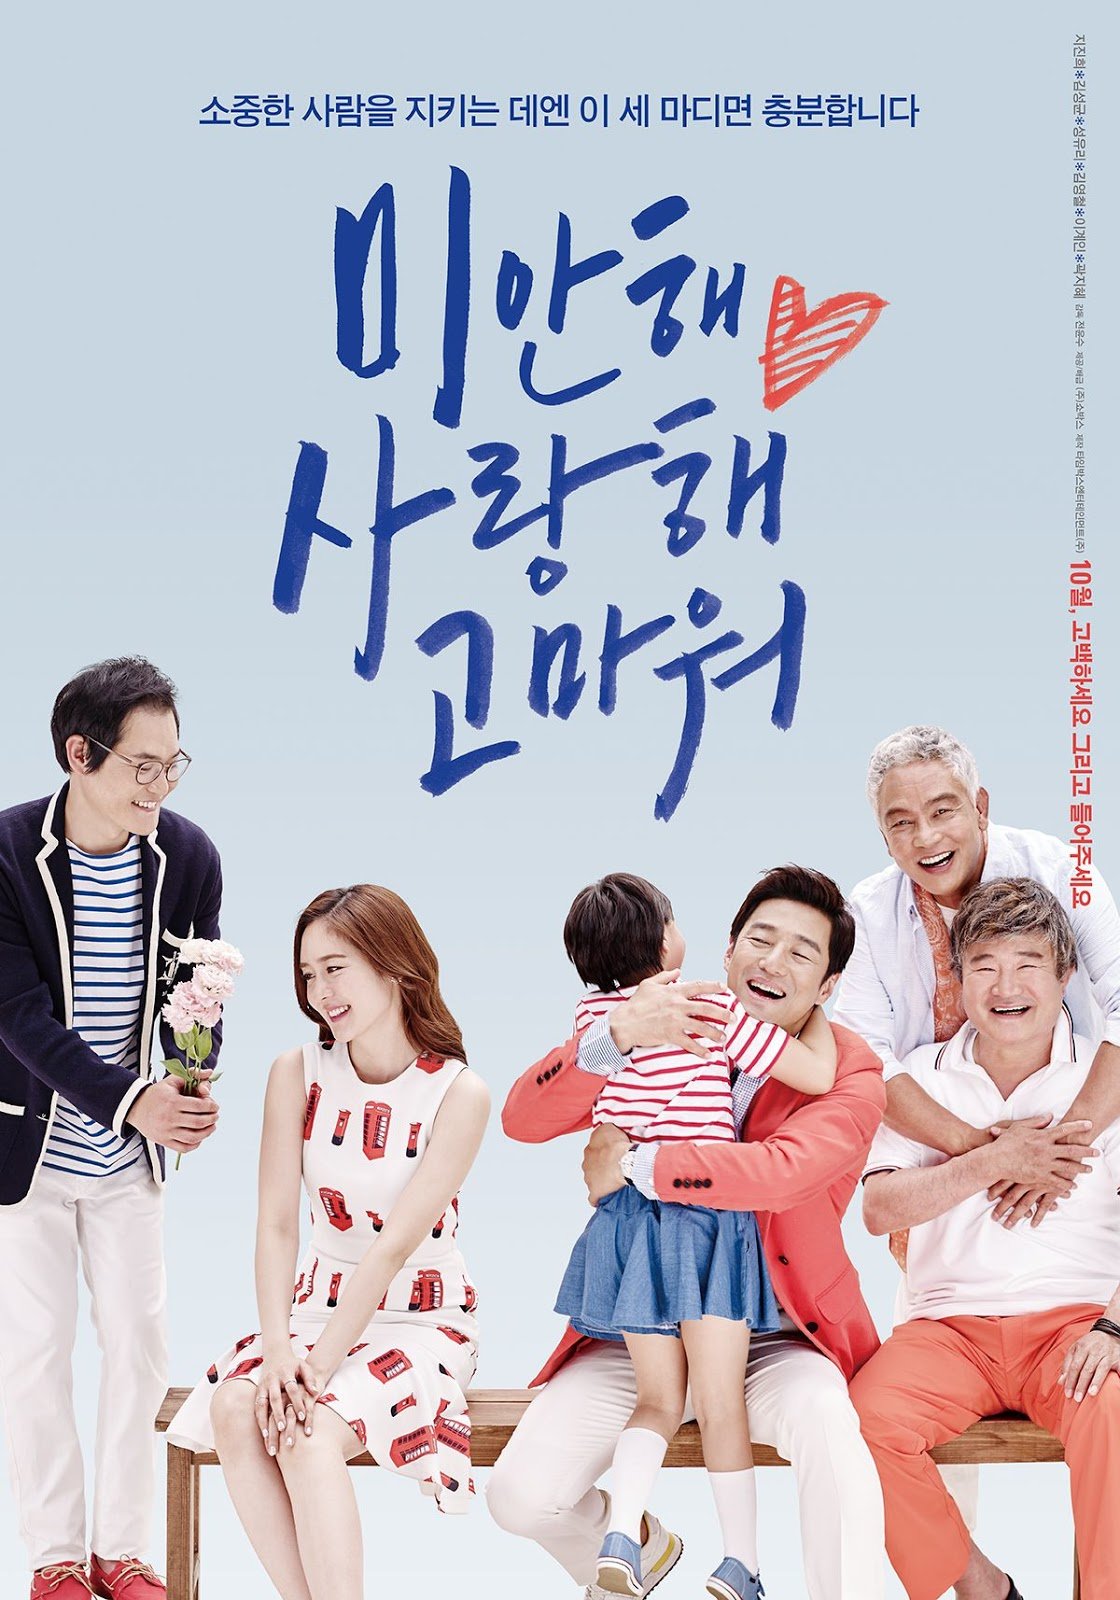 Download Film Summer Snow 2015 Subtitle Indonesia English Sorry I Love You Thank You